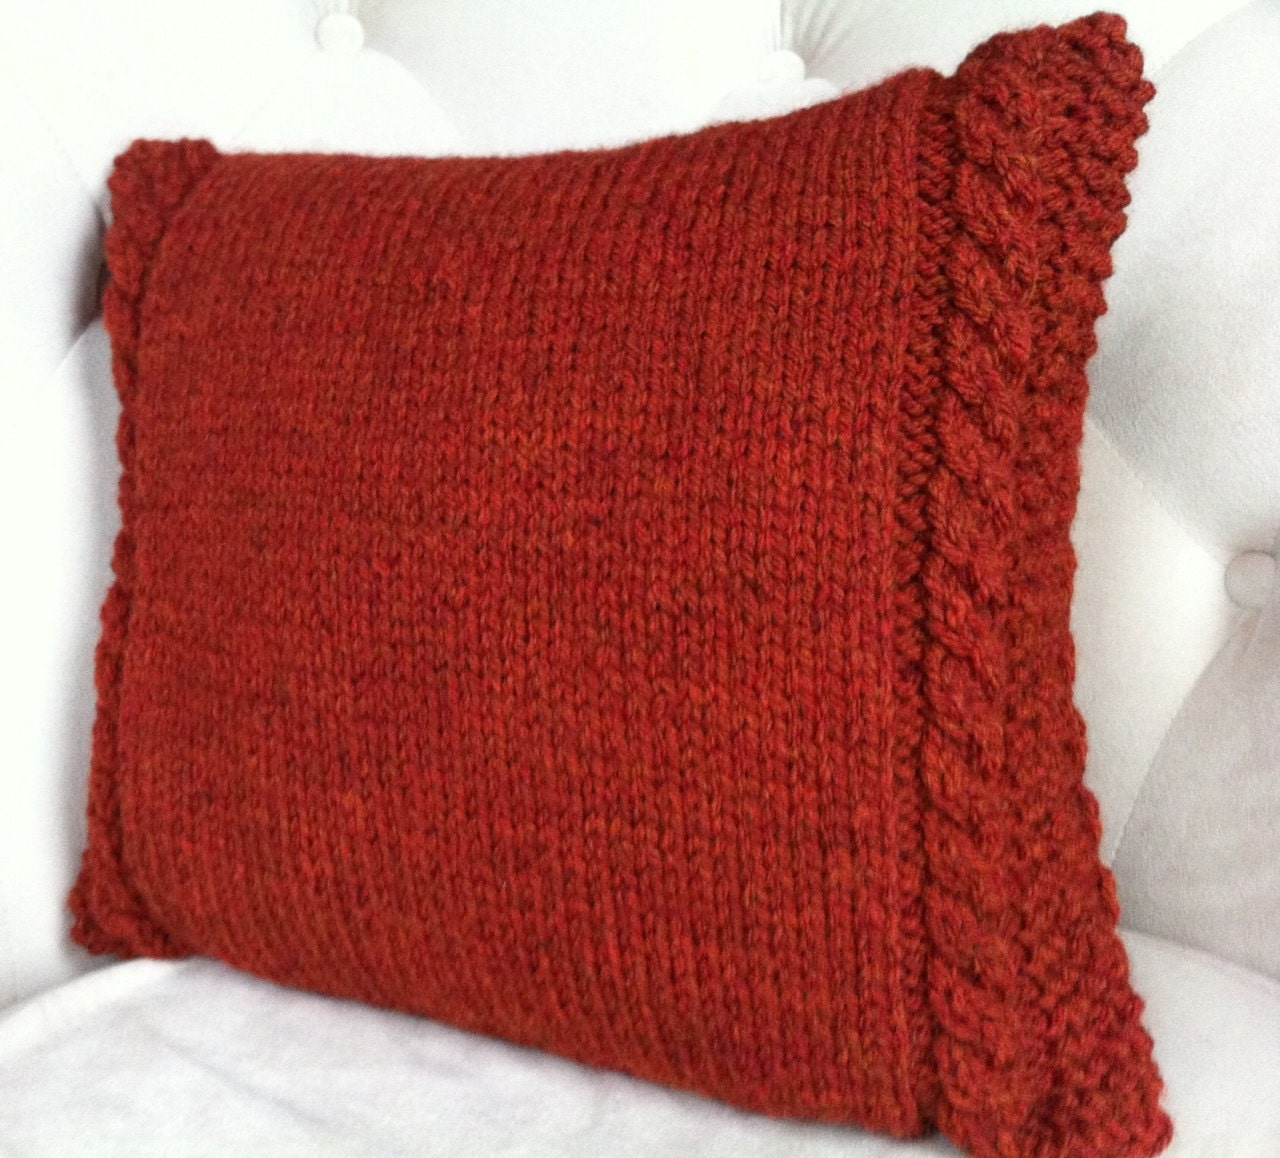 Knitting Pillows : Decorative pillow cable knit cover